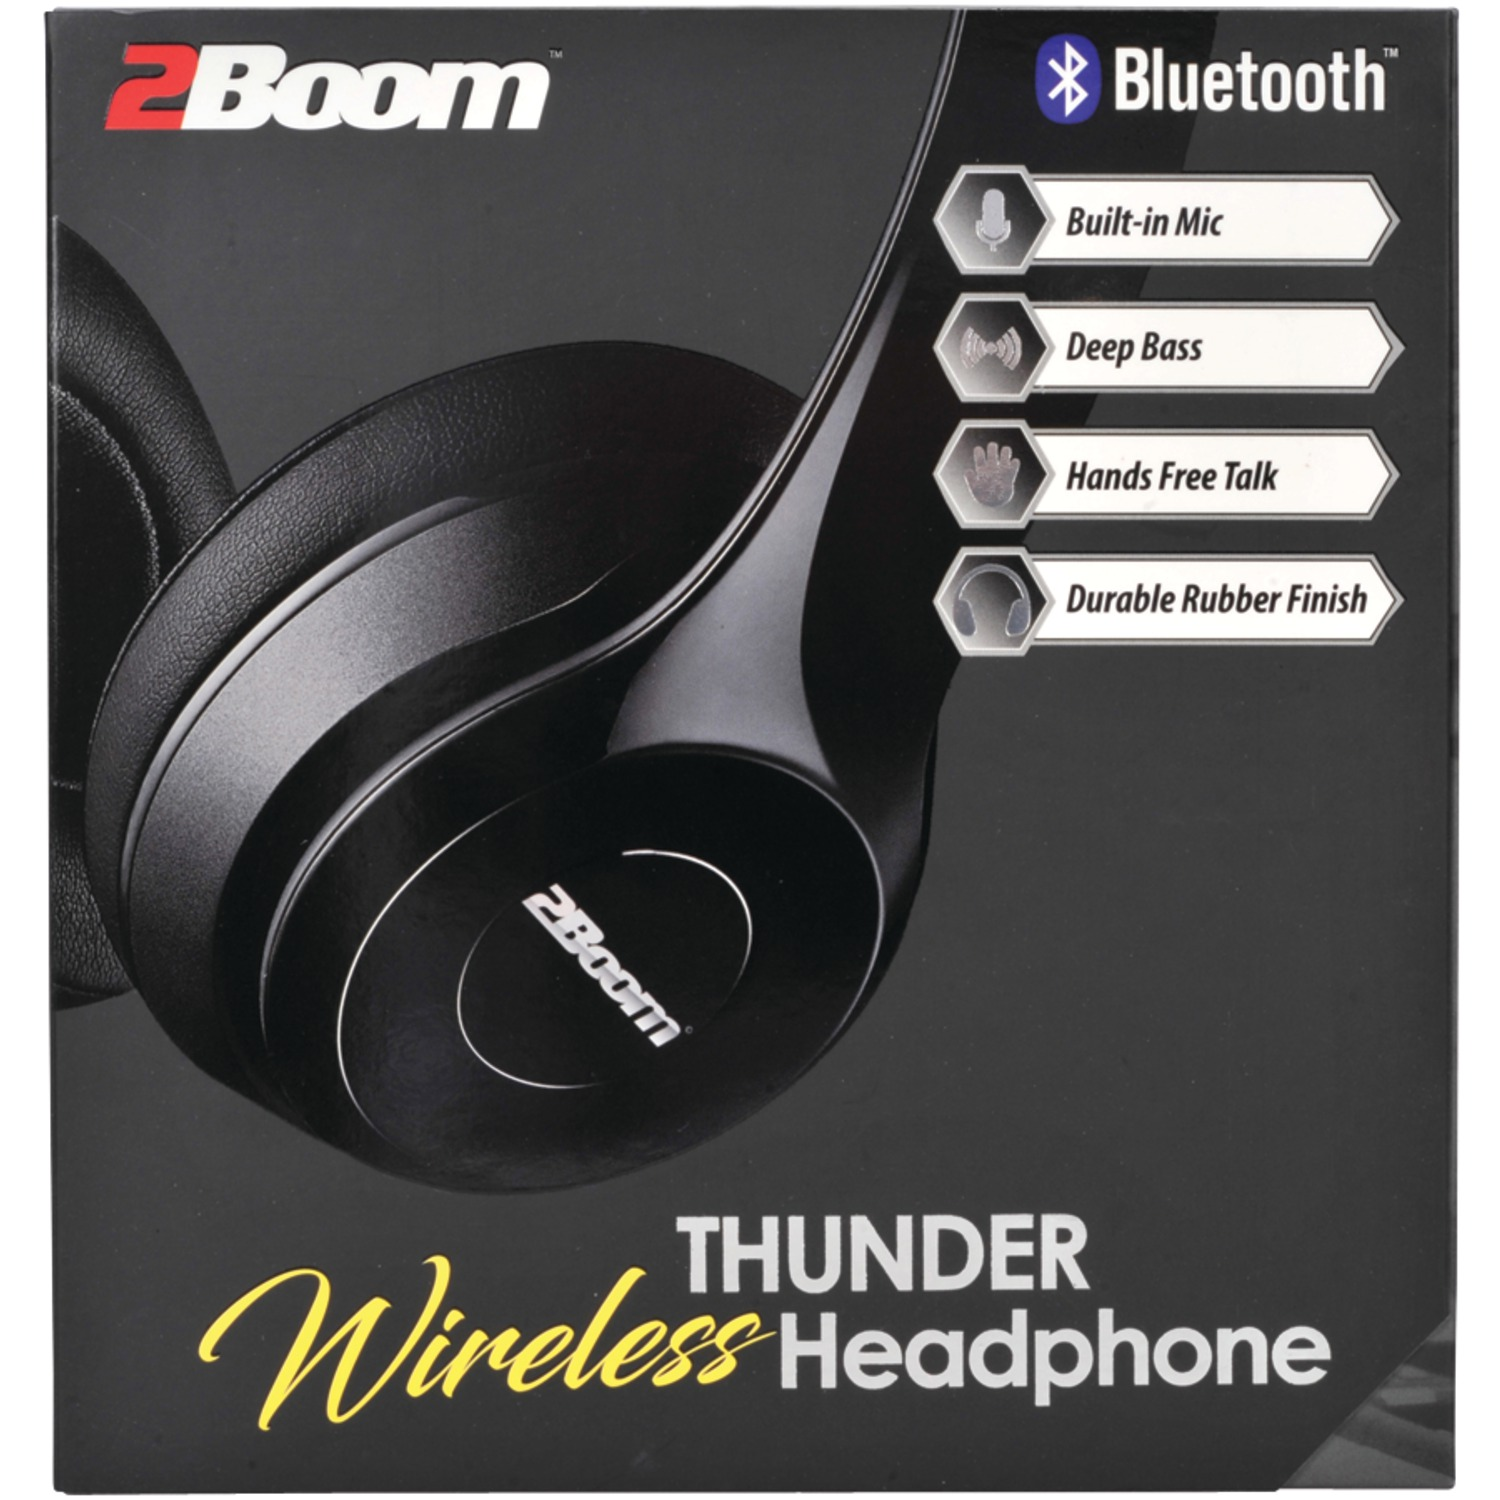 2BOOM HPBT345K Thunder Bluetooth Over-Ear Headphones with Microphone (Black)